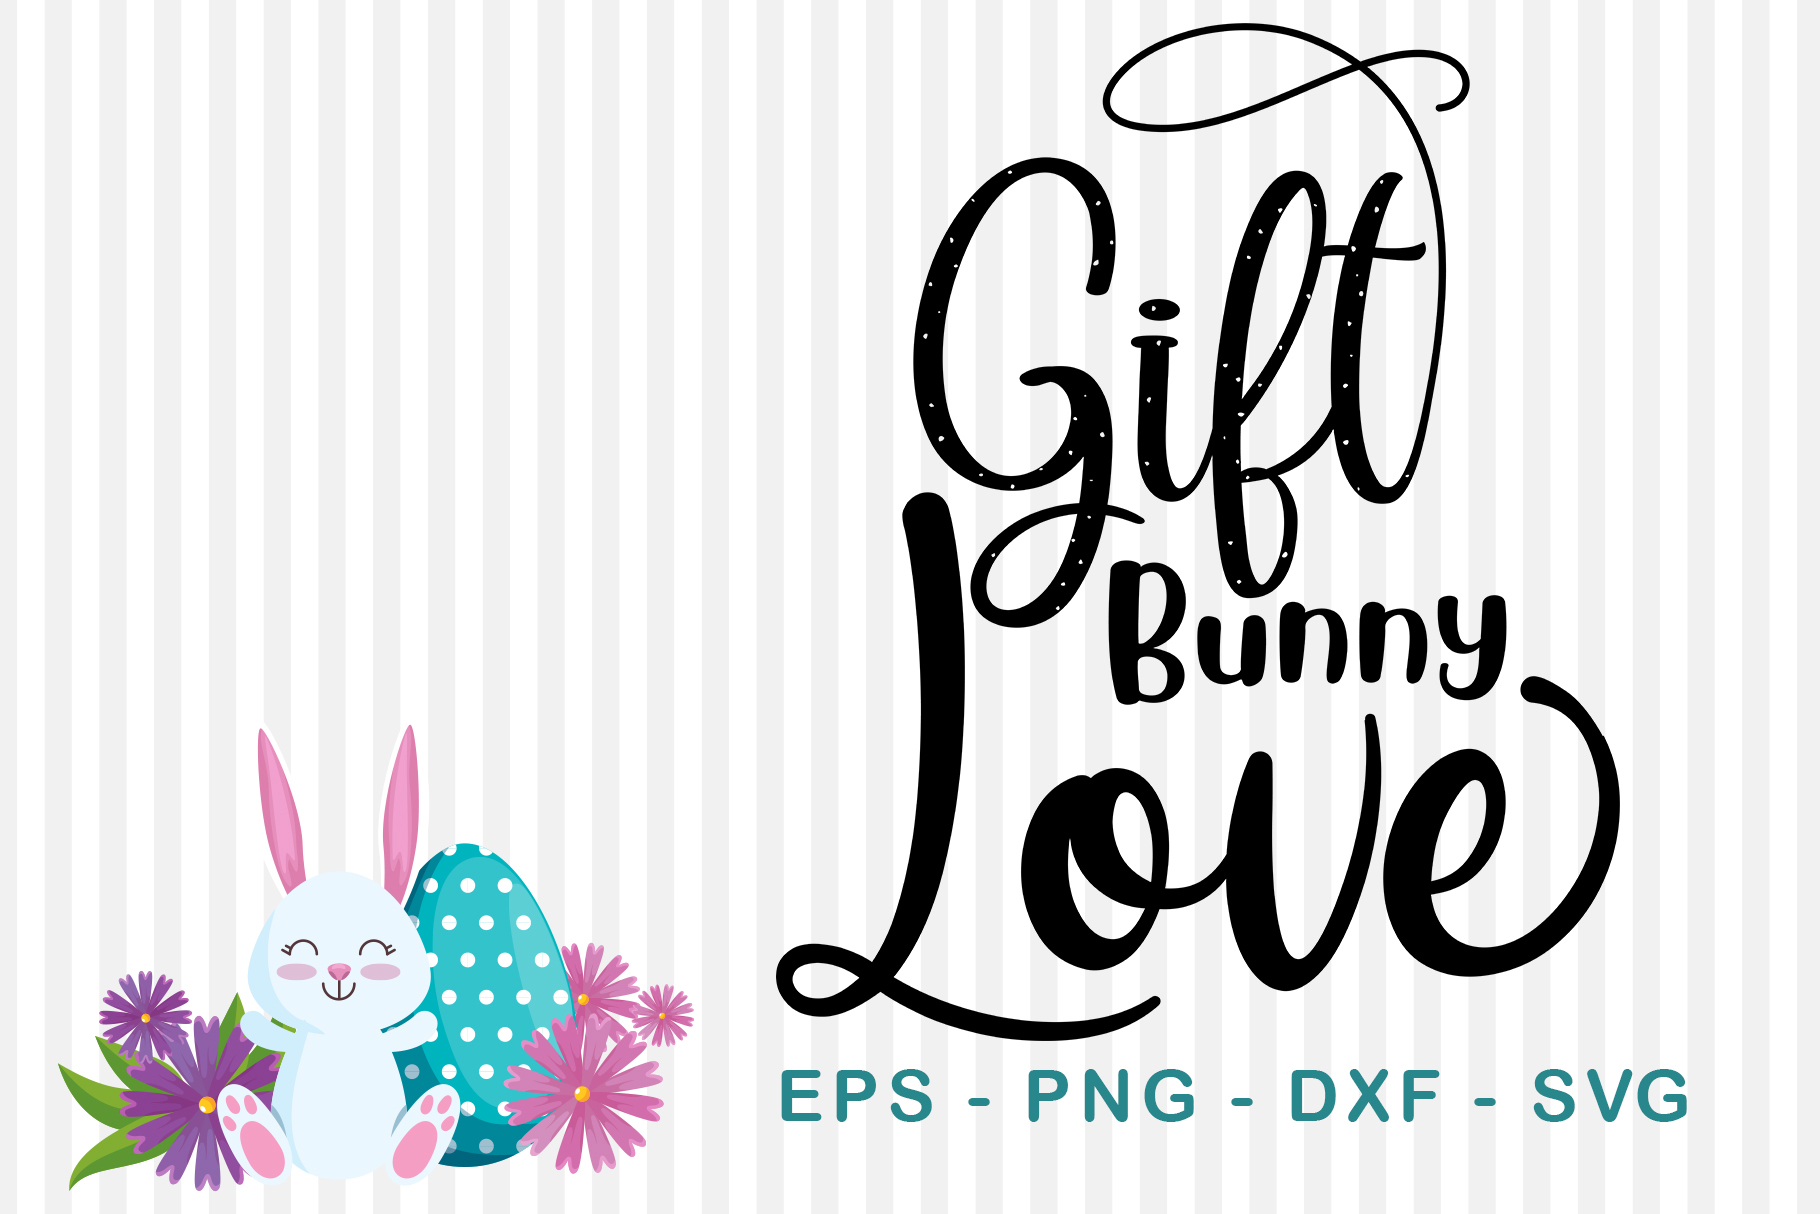 Download Free Gift Bunny Love Graphic By Sharon Dmstd Creative Fabrica for Cricut Explore, Silhouette and other cutting machines.